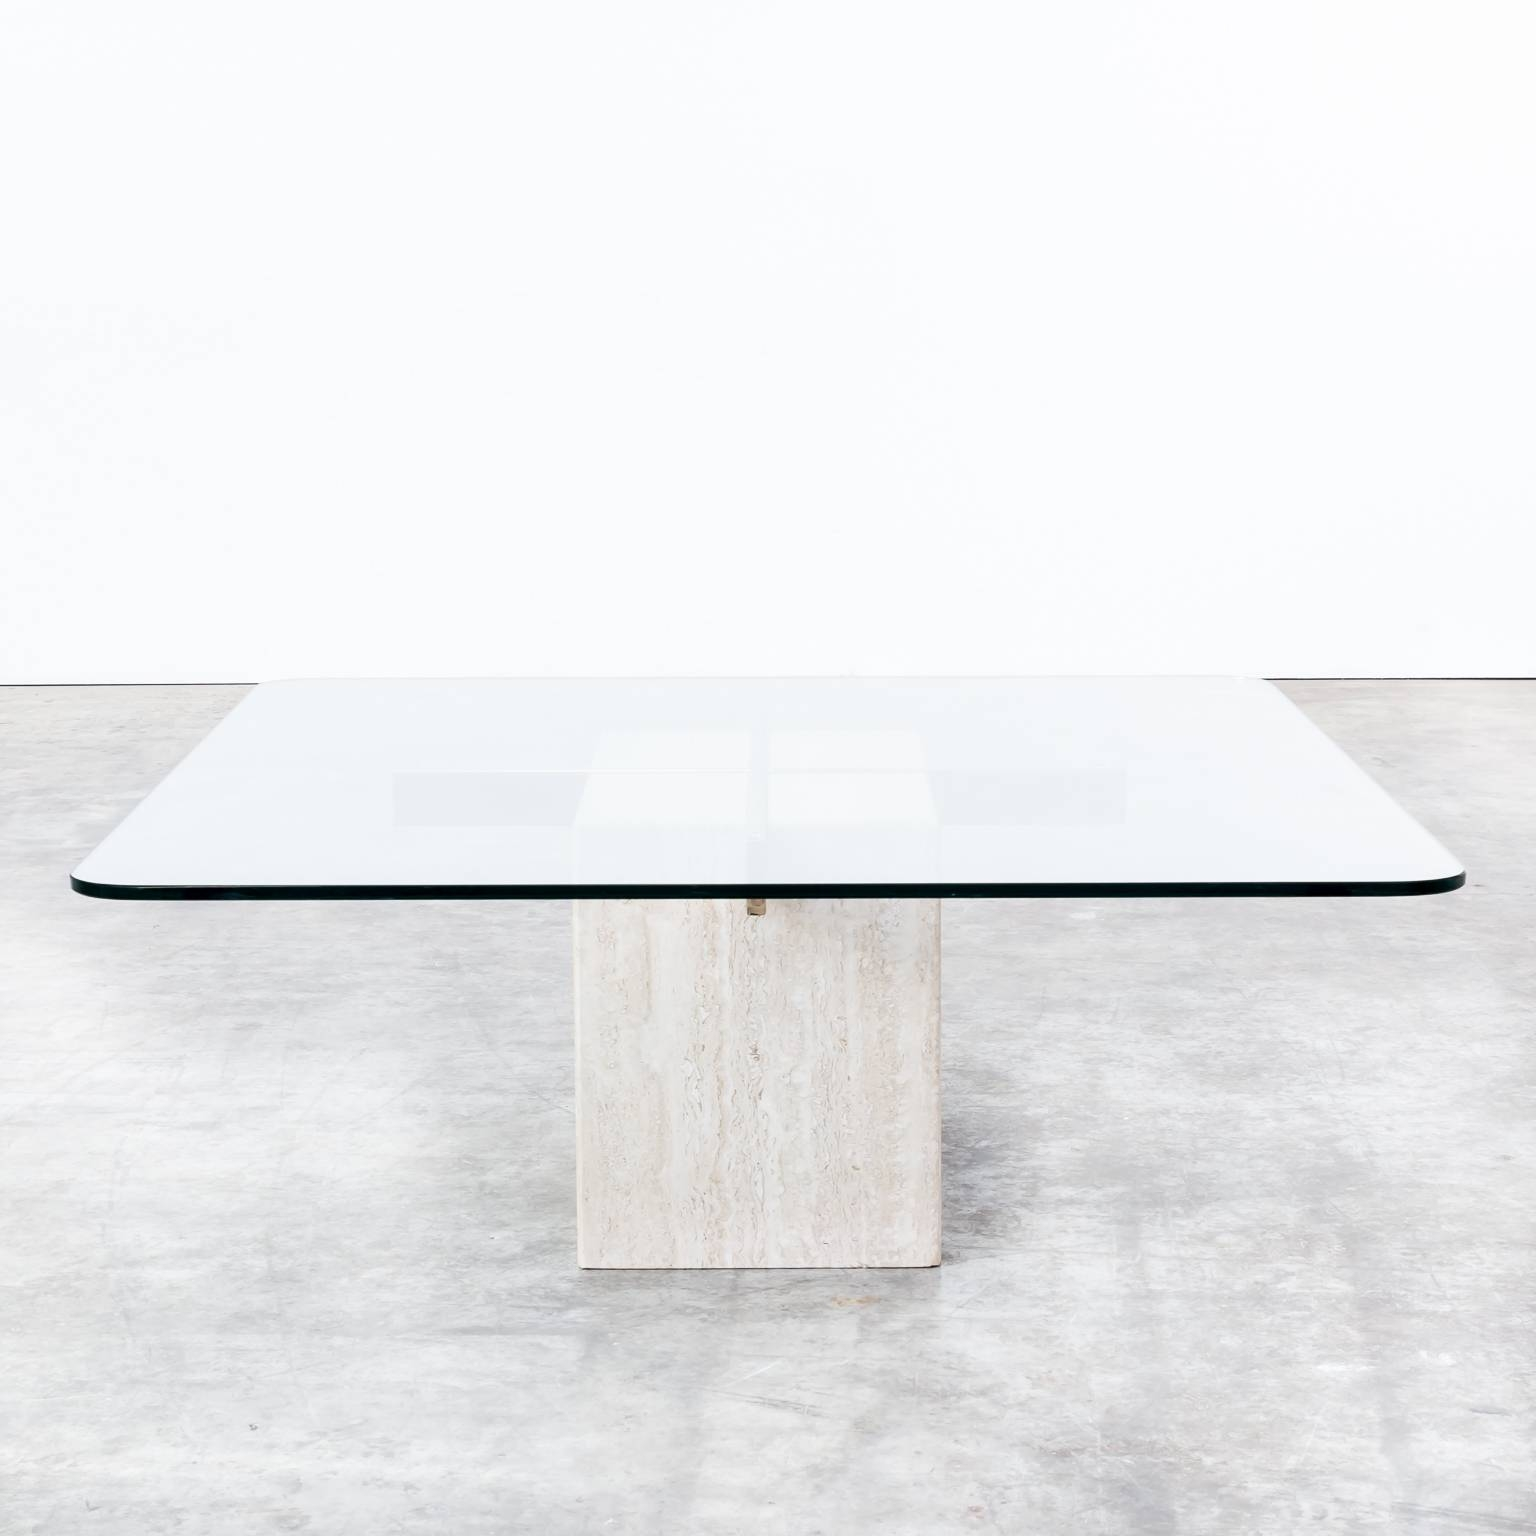 70S Artedi Italian Travertine Base, Glass Top Coffee Table | Barbmama intended for White Retro Coffee Tables (Image 3 of 30)